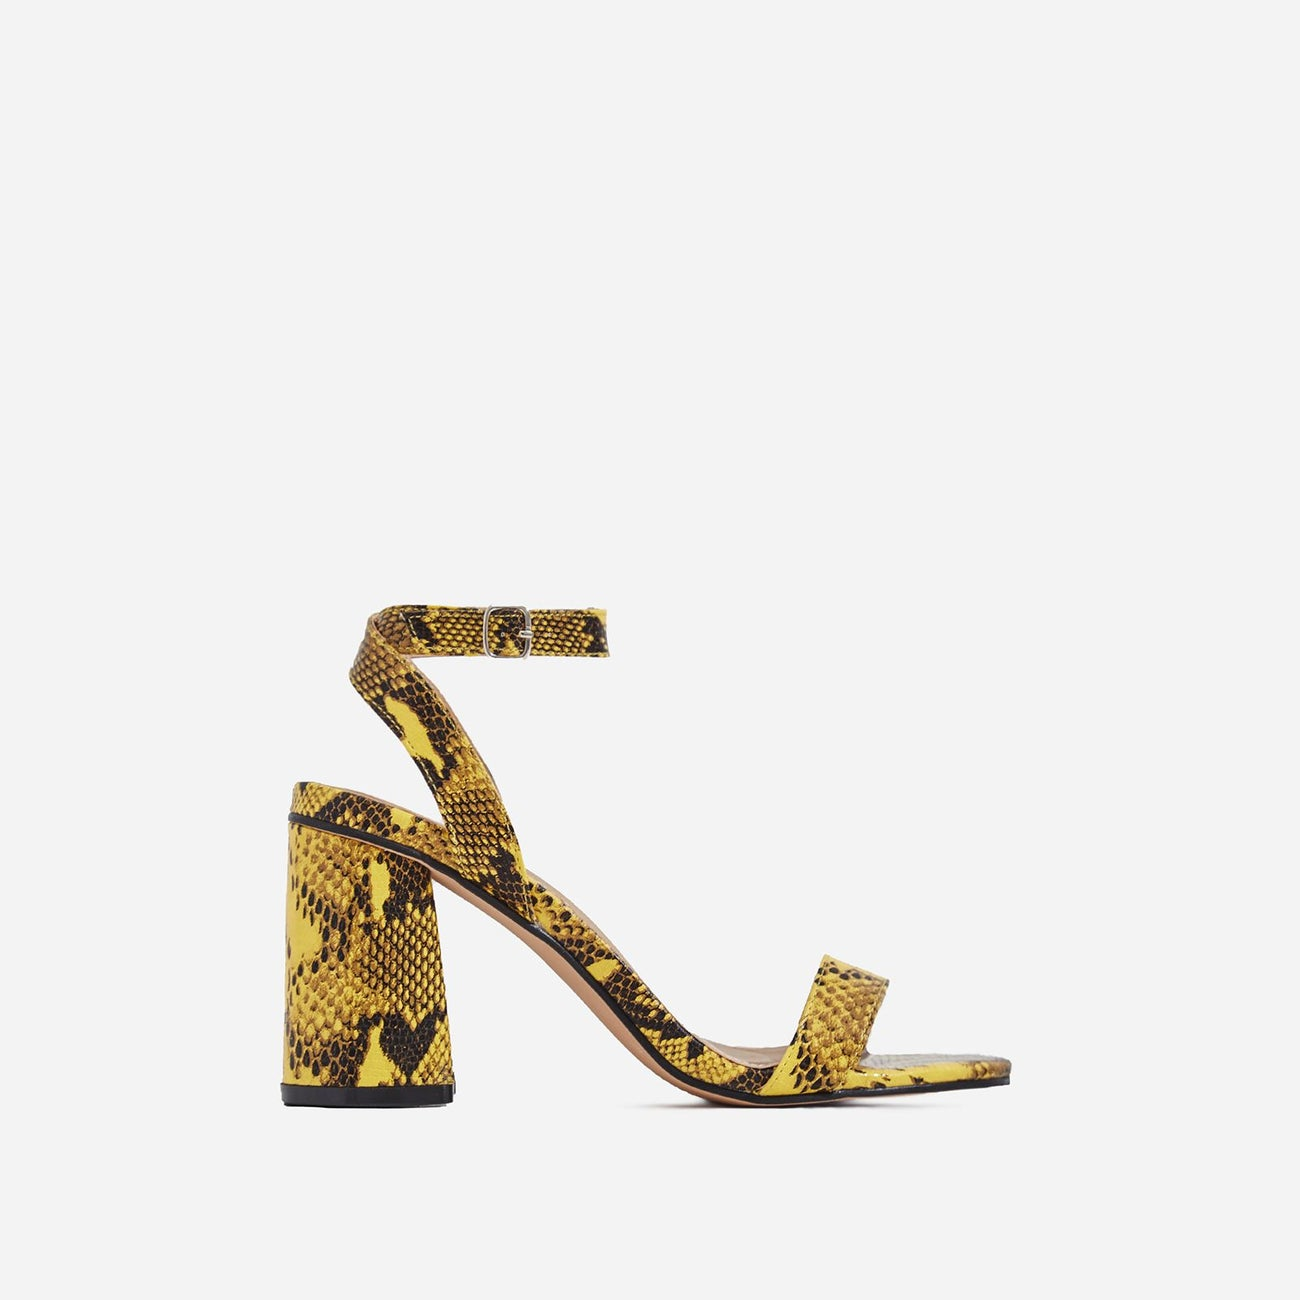 Nikita Midi Block Heel In Yellow Snake Print Faux Leather